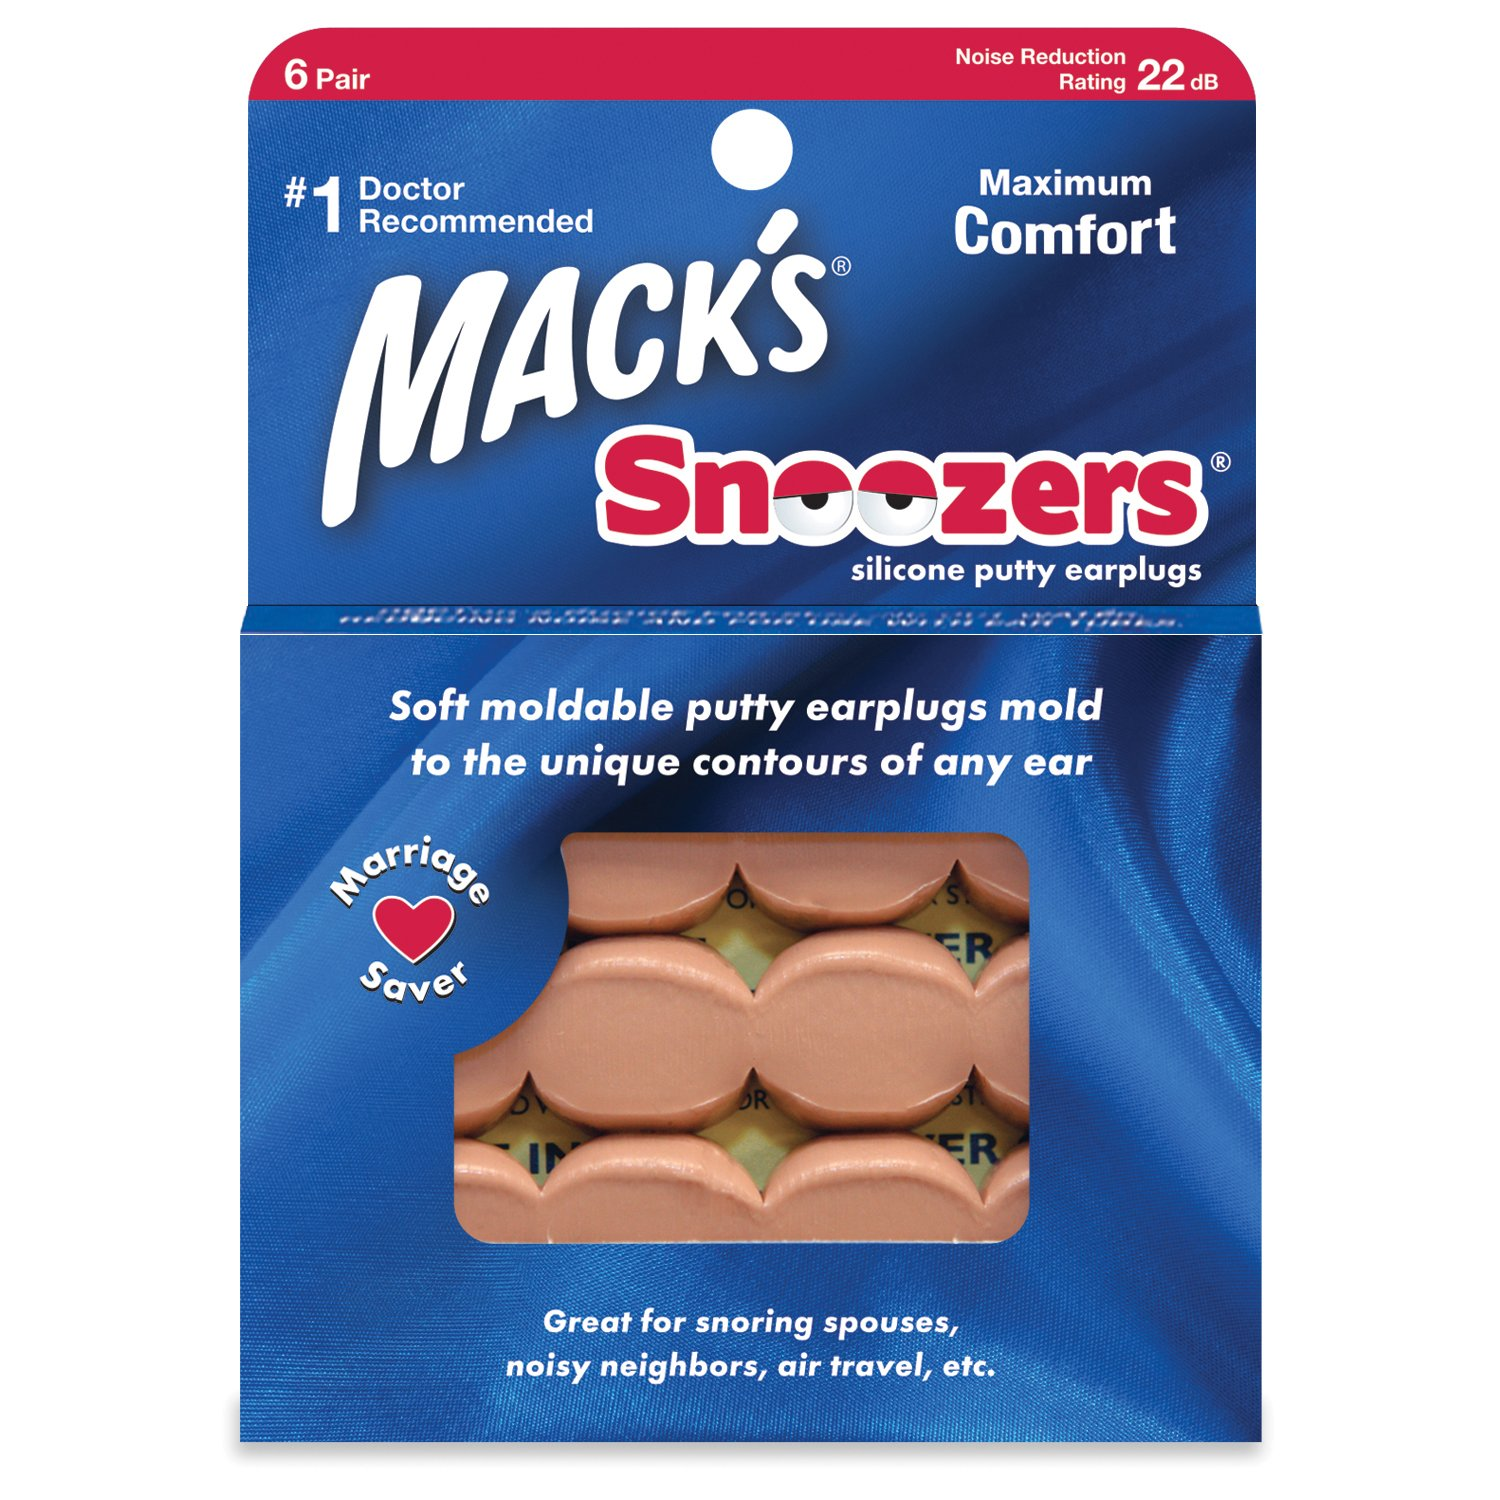 Macks Snoozers Moldable Silicone Putty Earplugs 6 Pairs x 3 18 Pairs